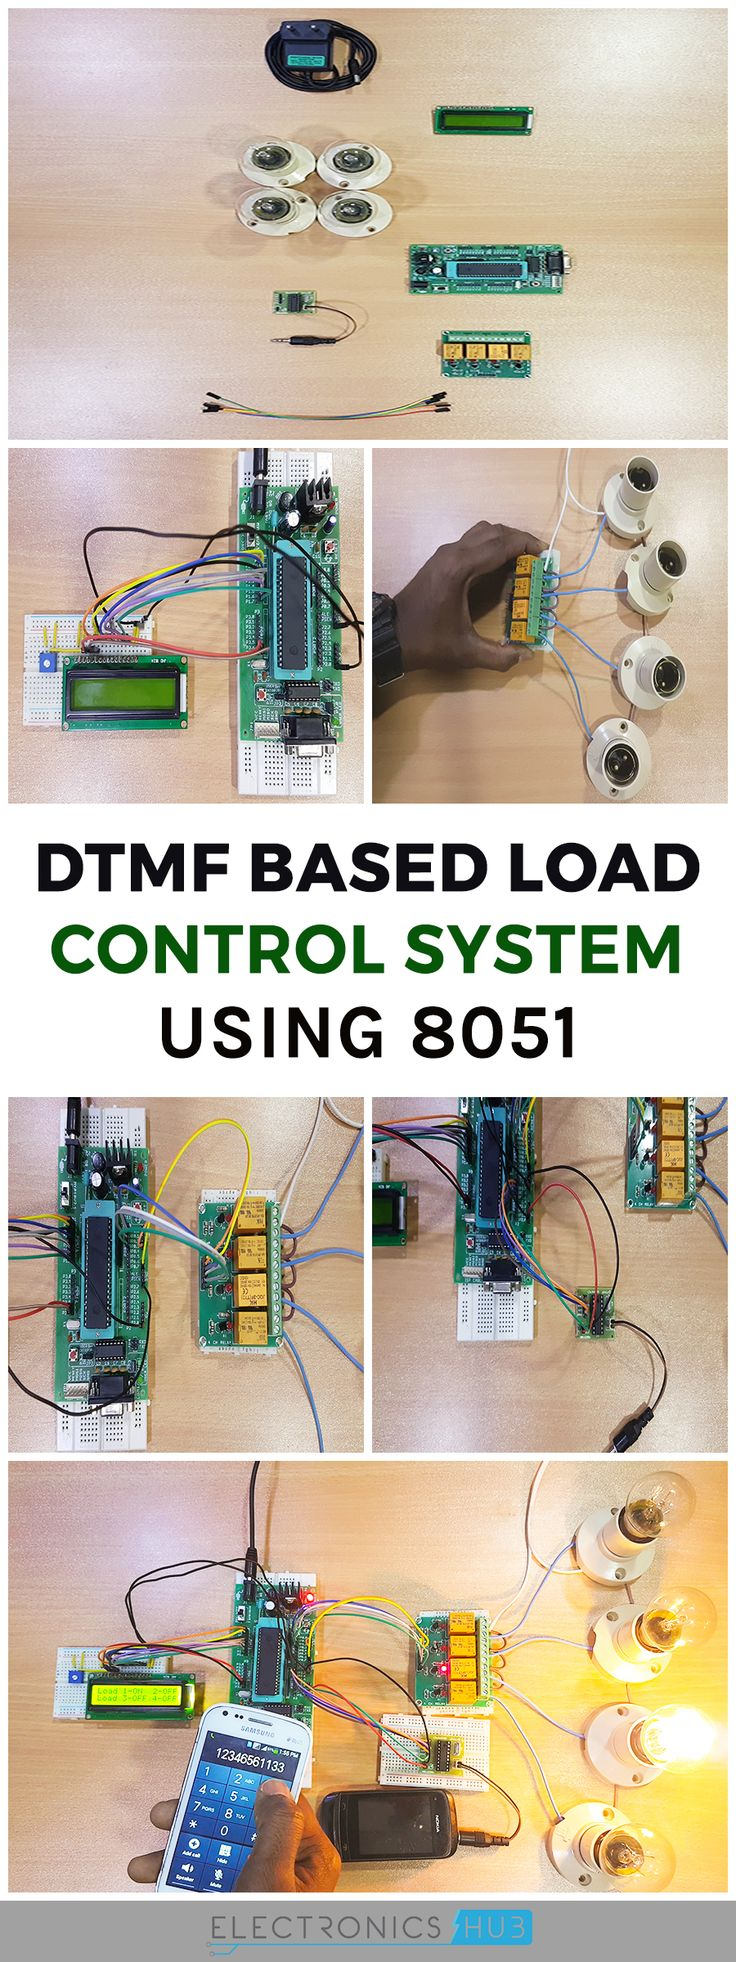 Dtmf Based Fm Remote Control Circuit Electronic Projects 73 Best Electronics Images On Pinterest Home Automation System Using Microcontroller